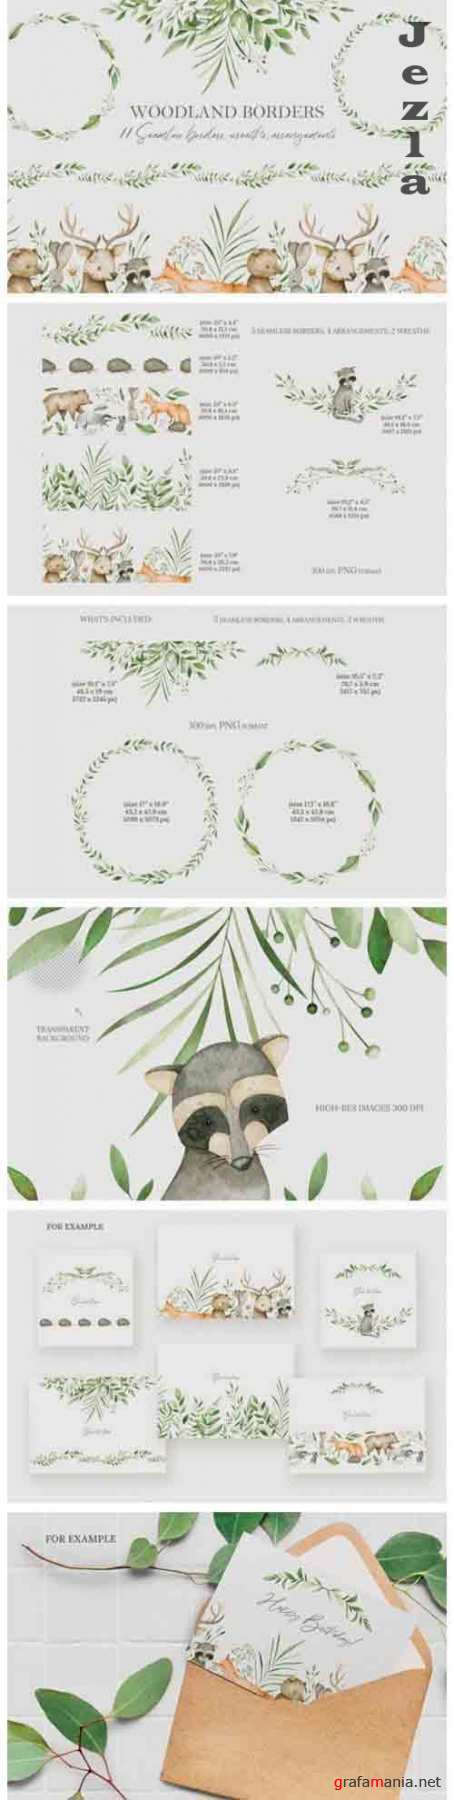 Watercolor woodland borders clipart - 1355931